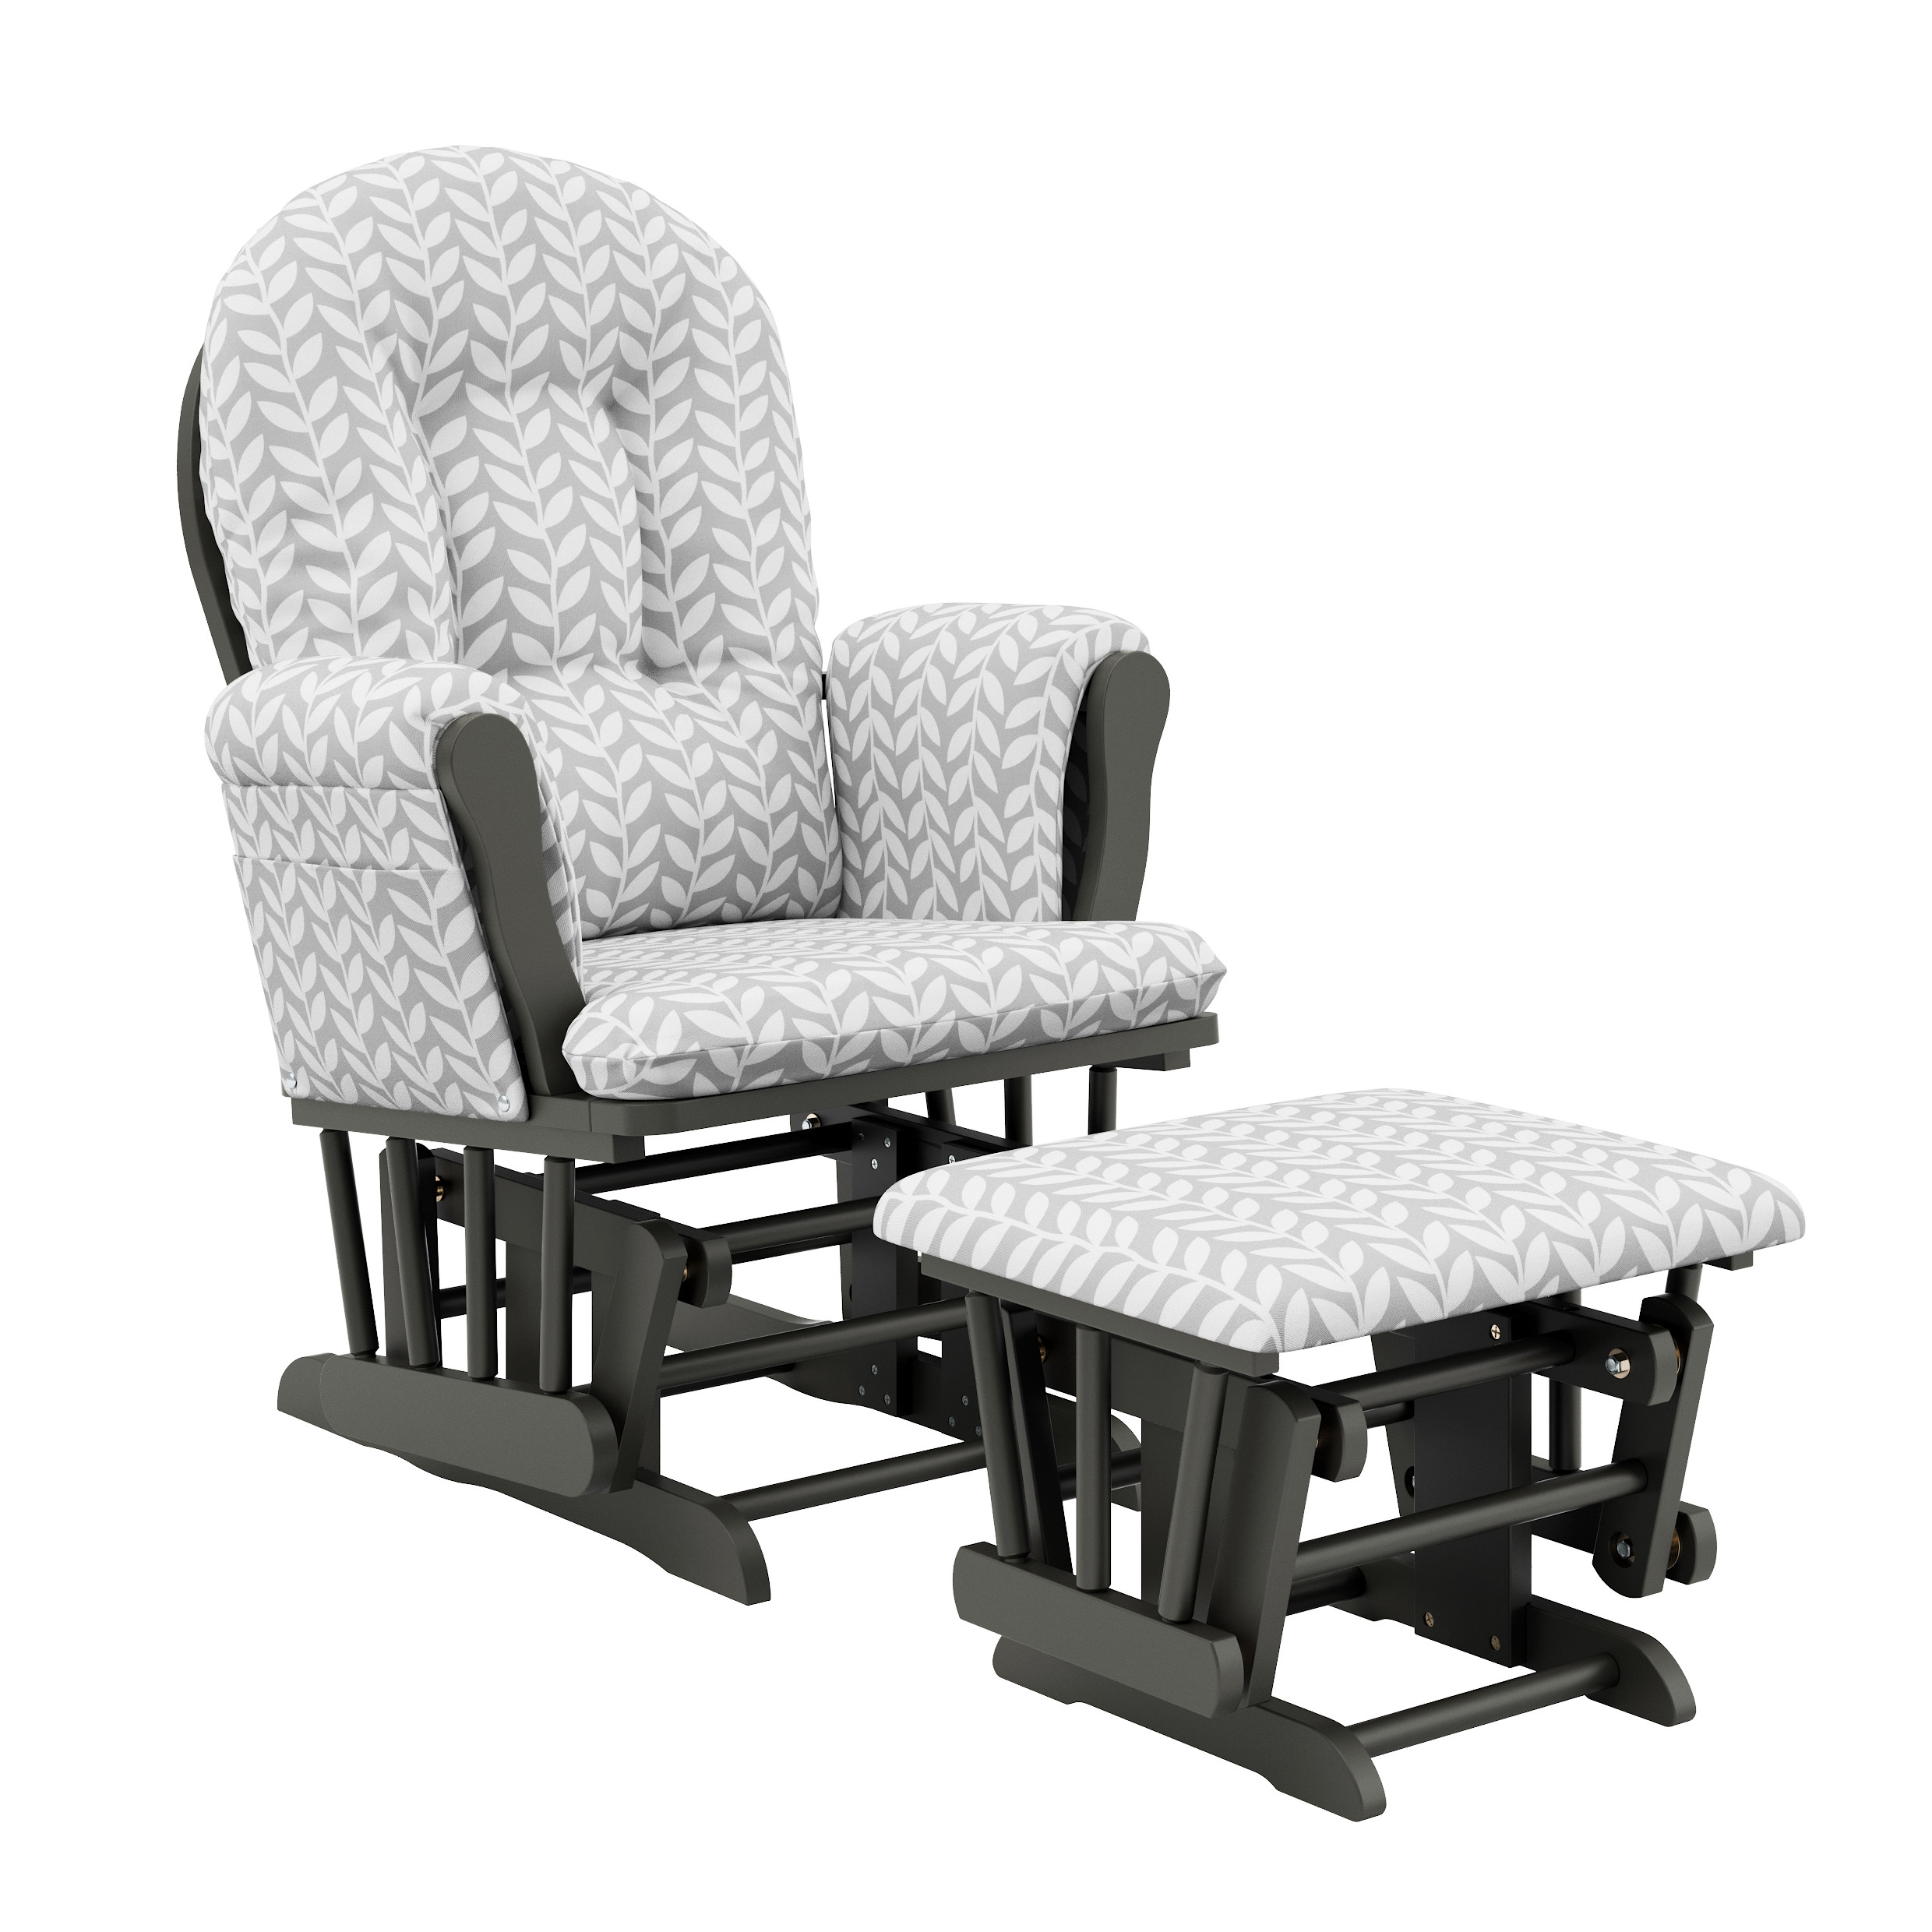 Storkcraft Vine Hoop Glider and Ottoman Gray with Light Gray